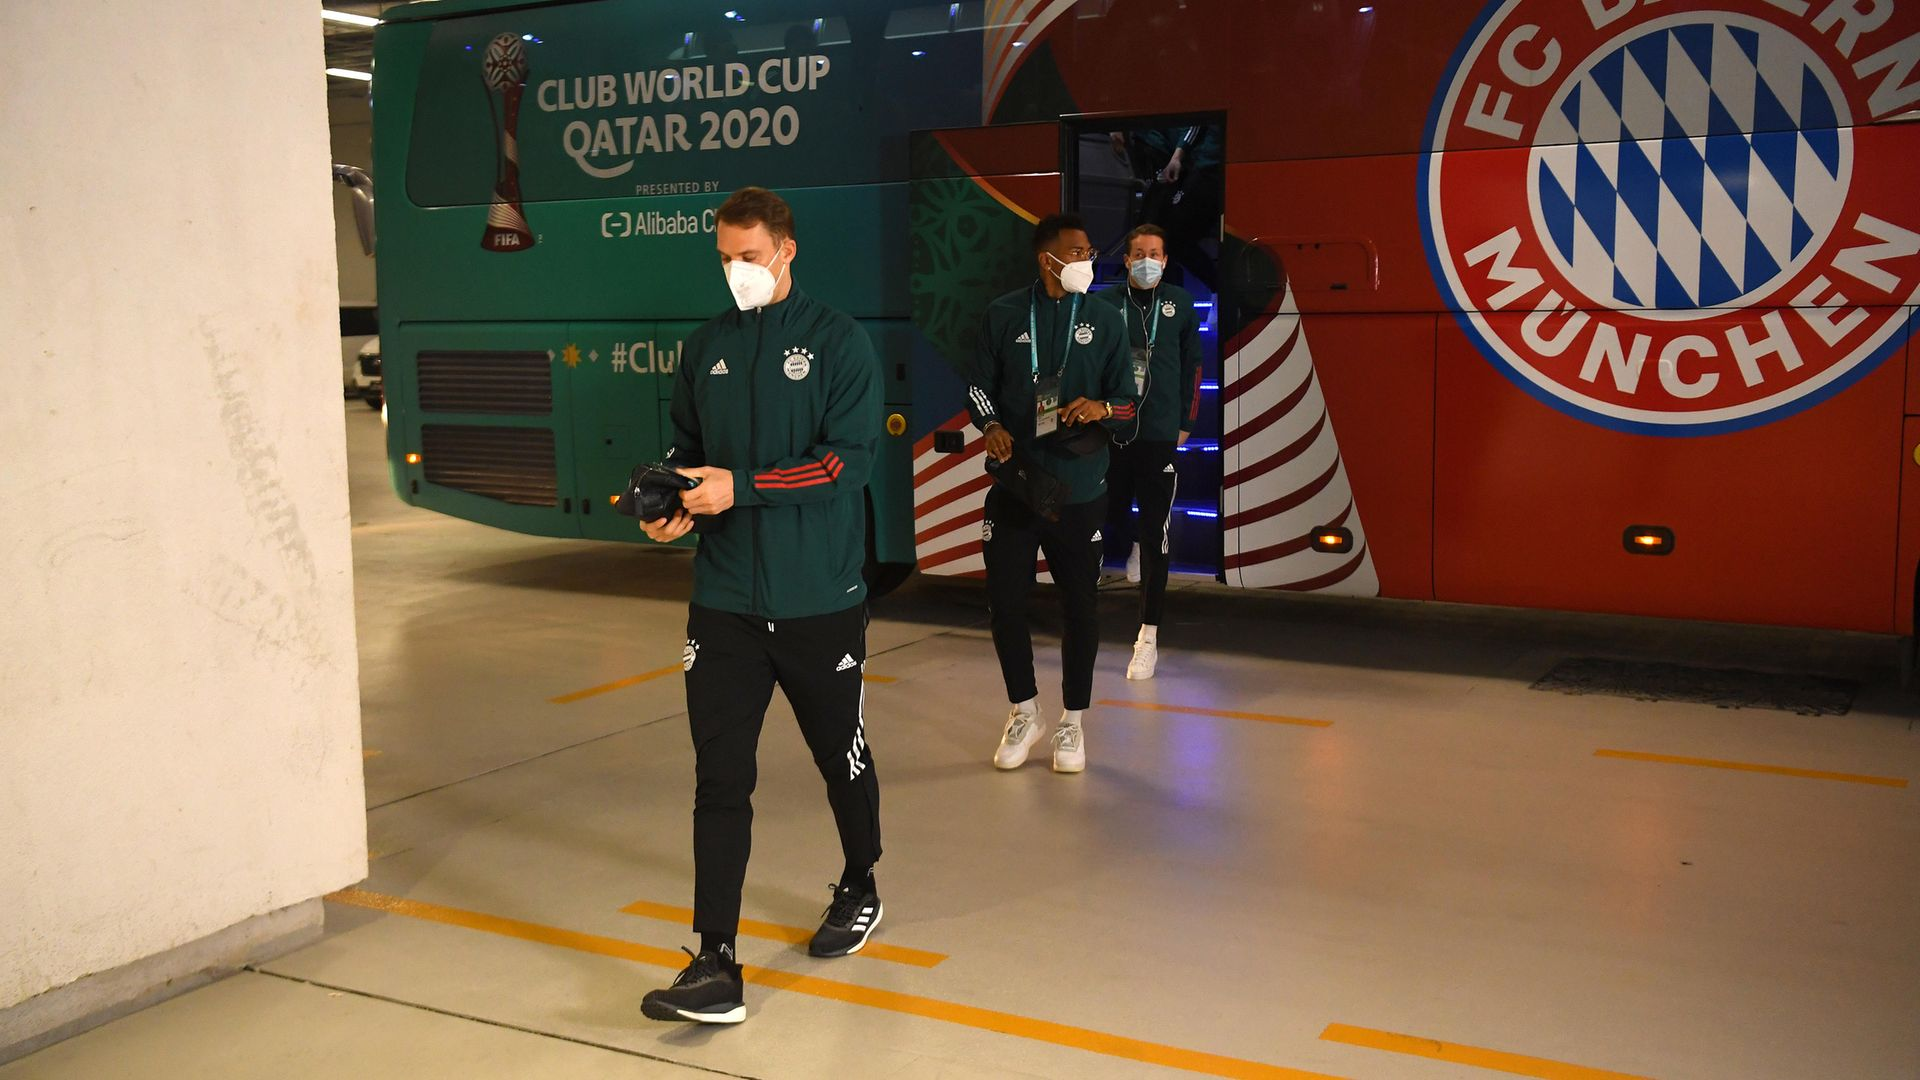 Back on track: Manuel Neuer and Jerome Boateng of Bayern Munich arrive at the stadium prior to the match against Al Ahly at the Ahmad Bin Ali Stadium in Doha, Qatar - Credit: FIFA via Getty Images